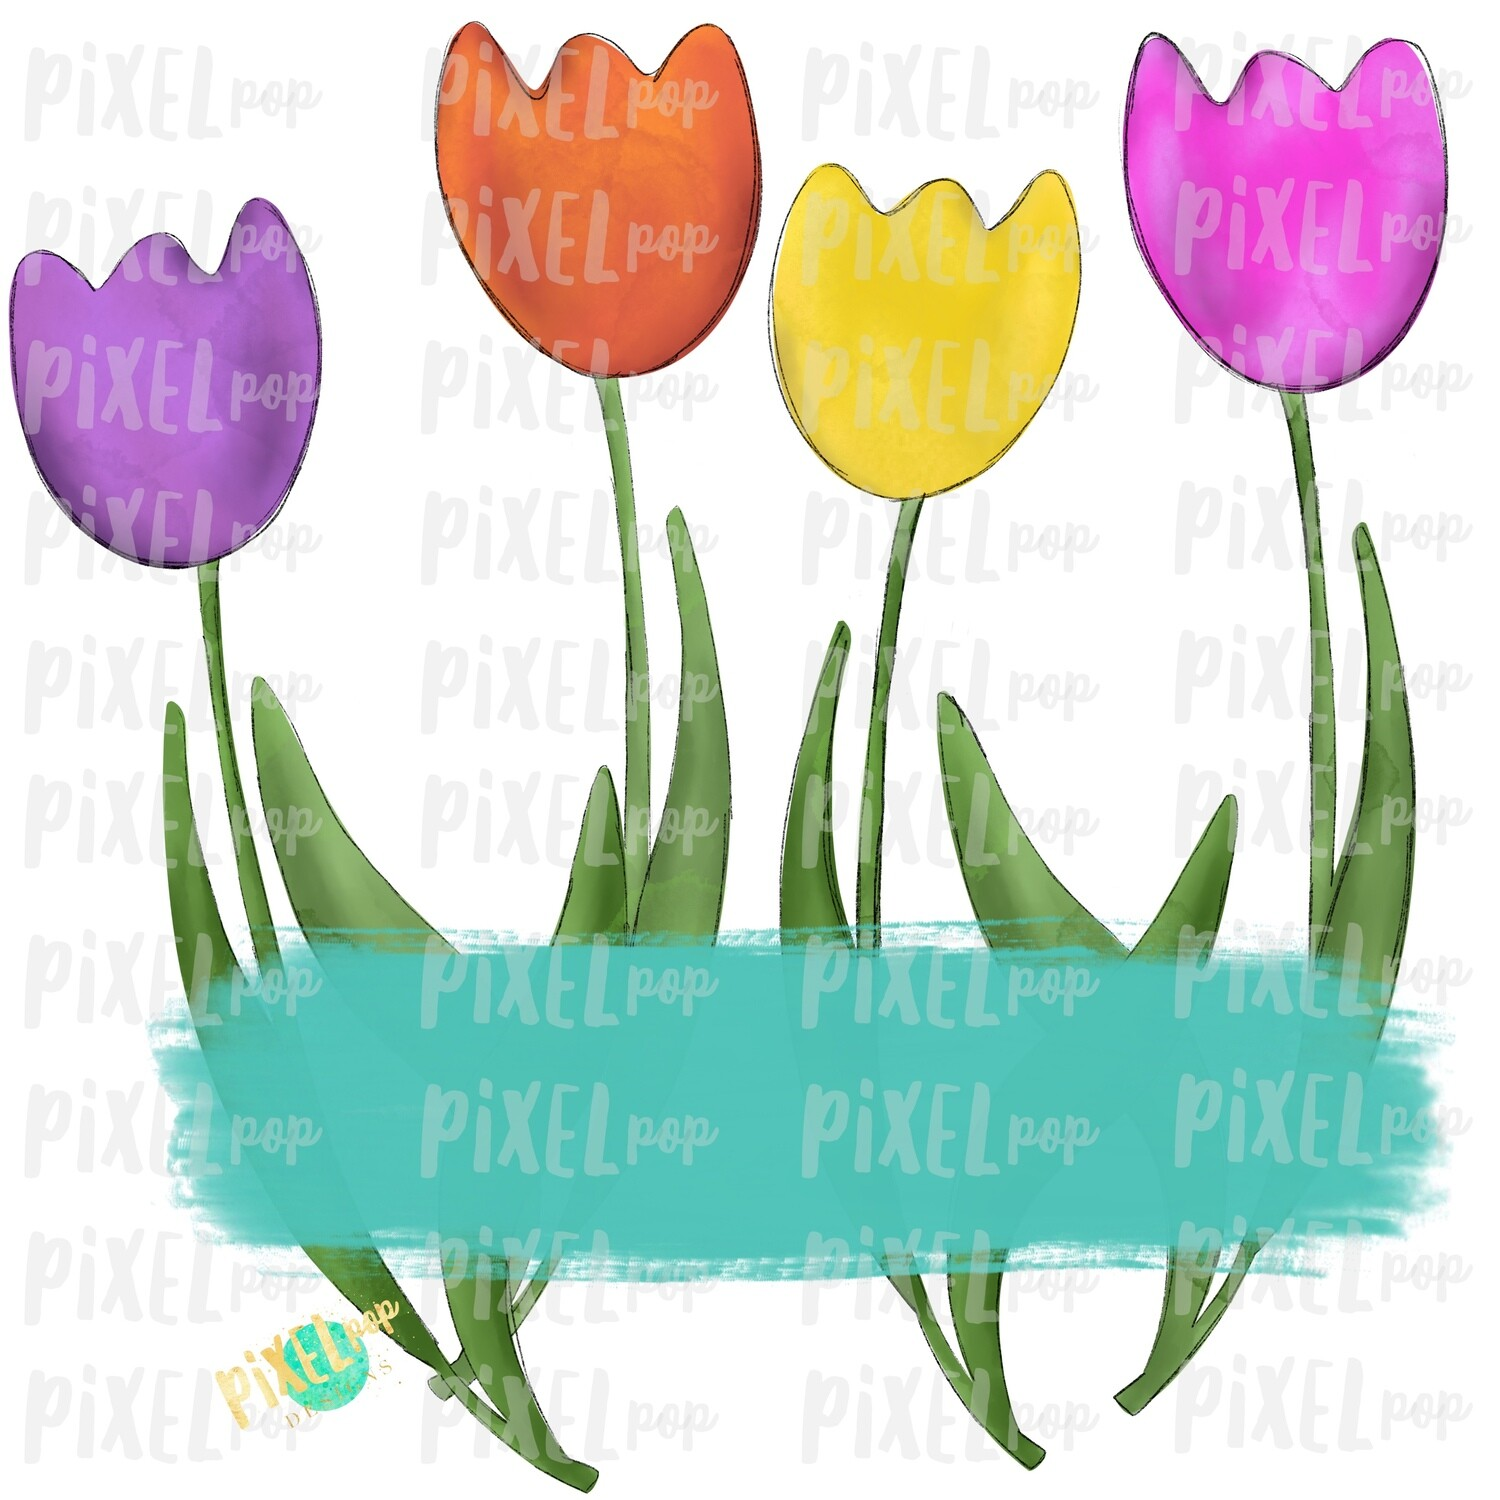 Watercolor Tulips with Blank Plate Sublimation PNG   Spring PNG   Sublimation Design   Heat Transfer PNG   Digital Download   Printable Art